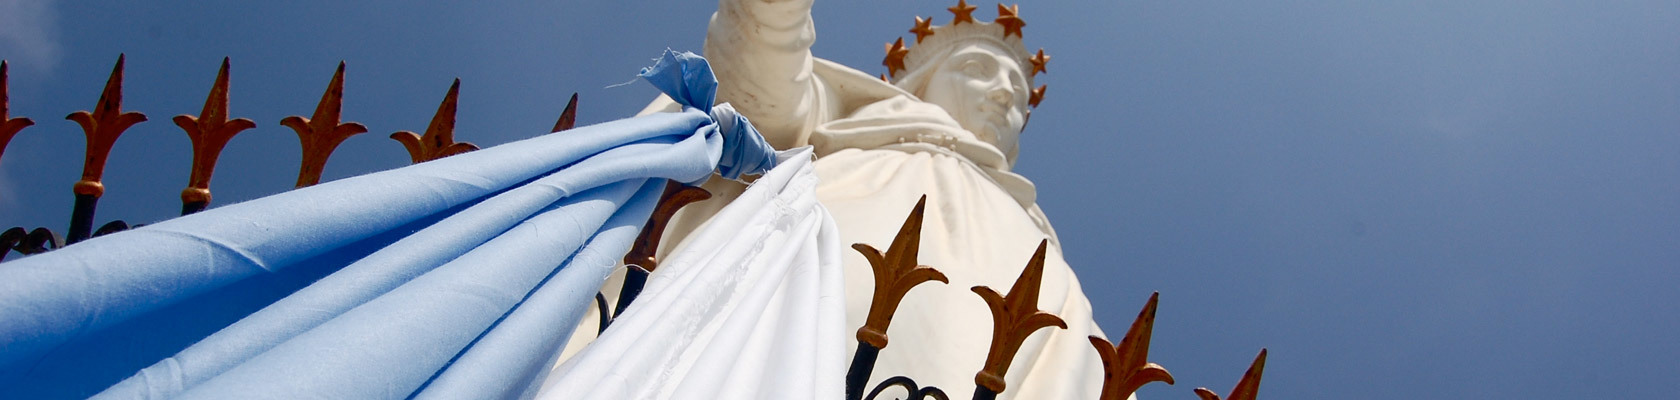 Our Lady of Lebanon Harissa